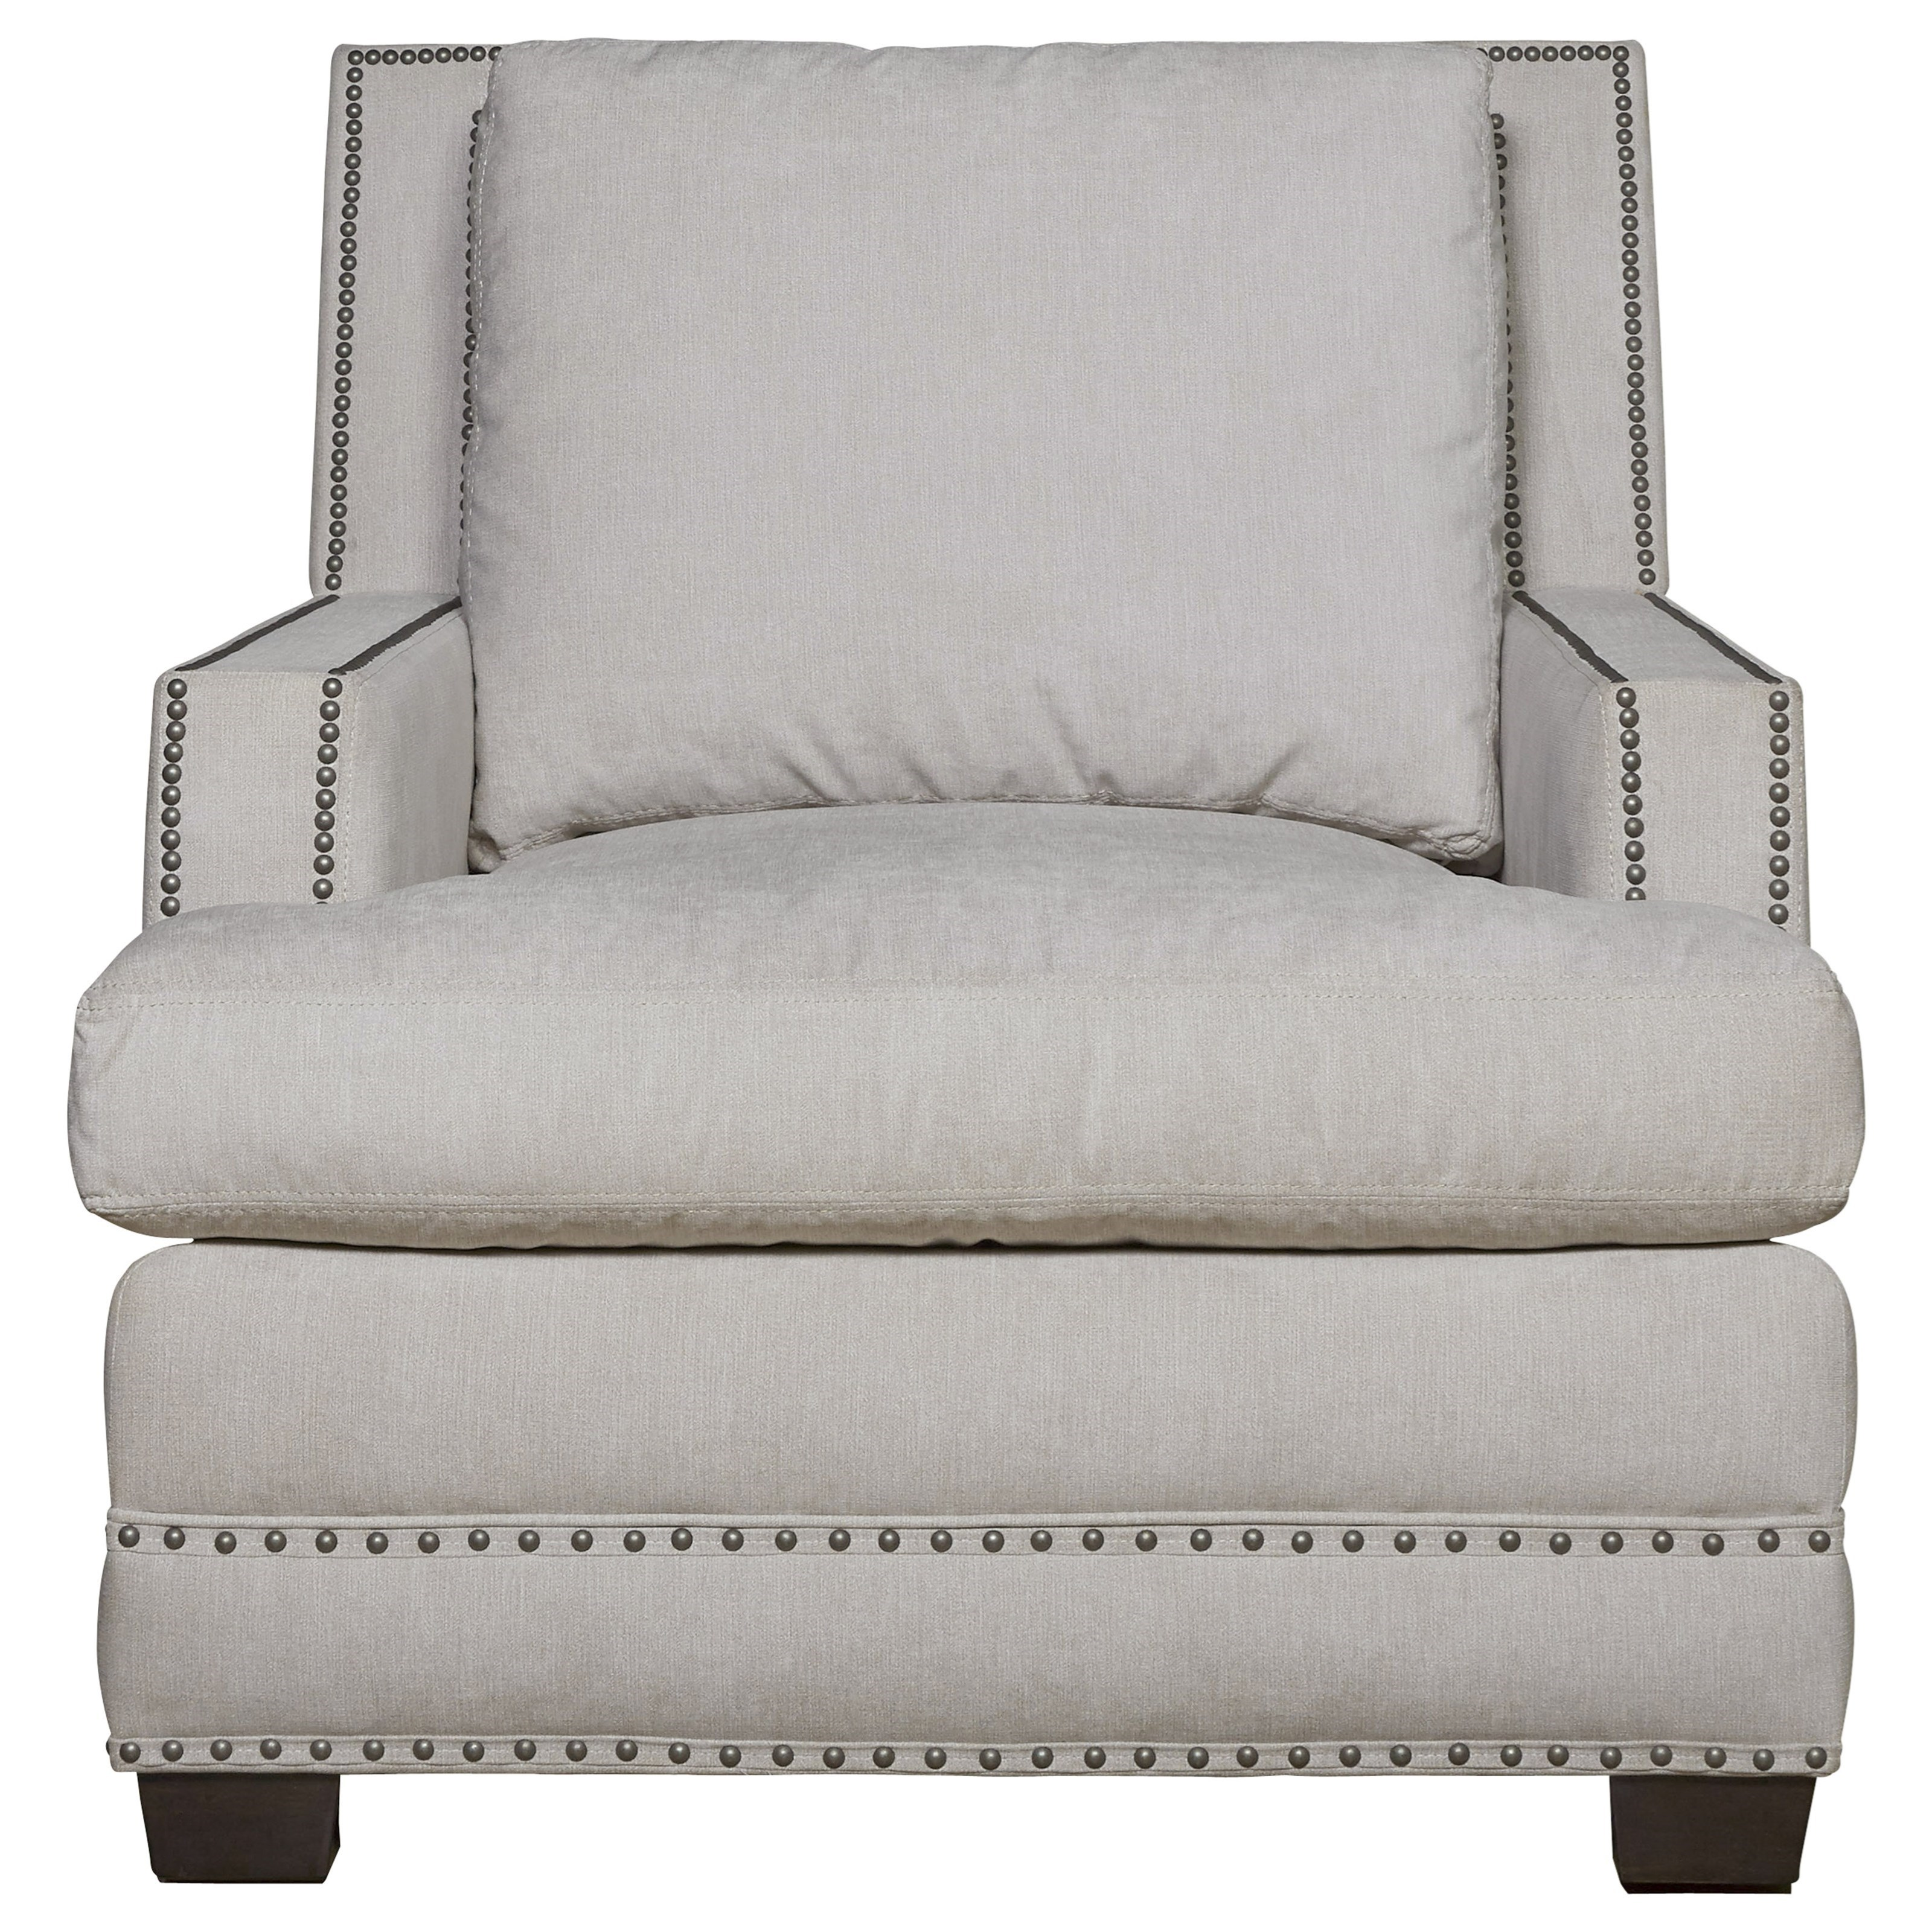 Franklin Street Upholstered Chair by Universal at Baer's Furniture